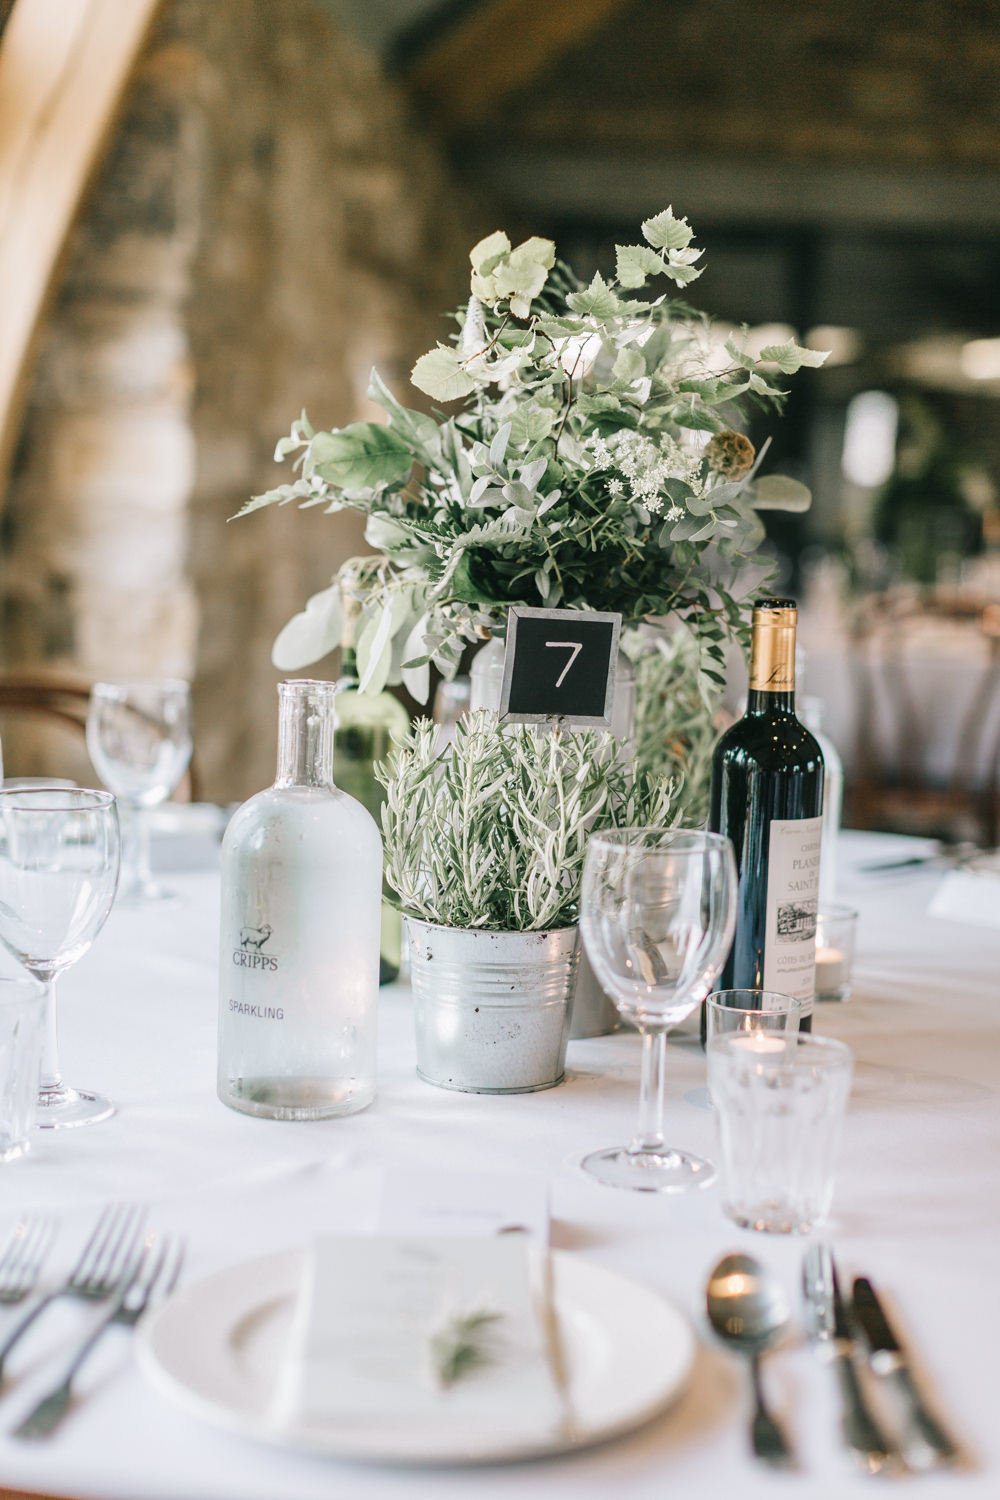 Table Centrepiece Flowers White Greenery Foliage Sweet Peas Fern Healey Barn Wedding Amy Lou Photography